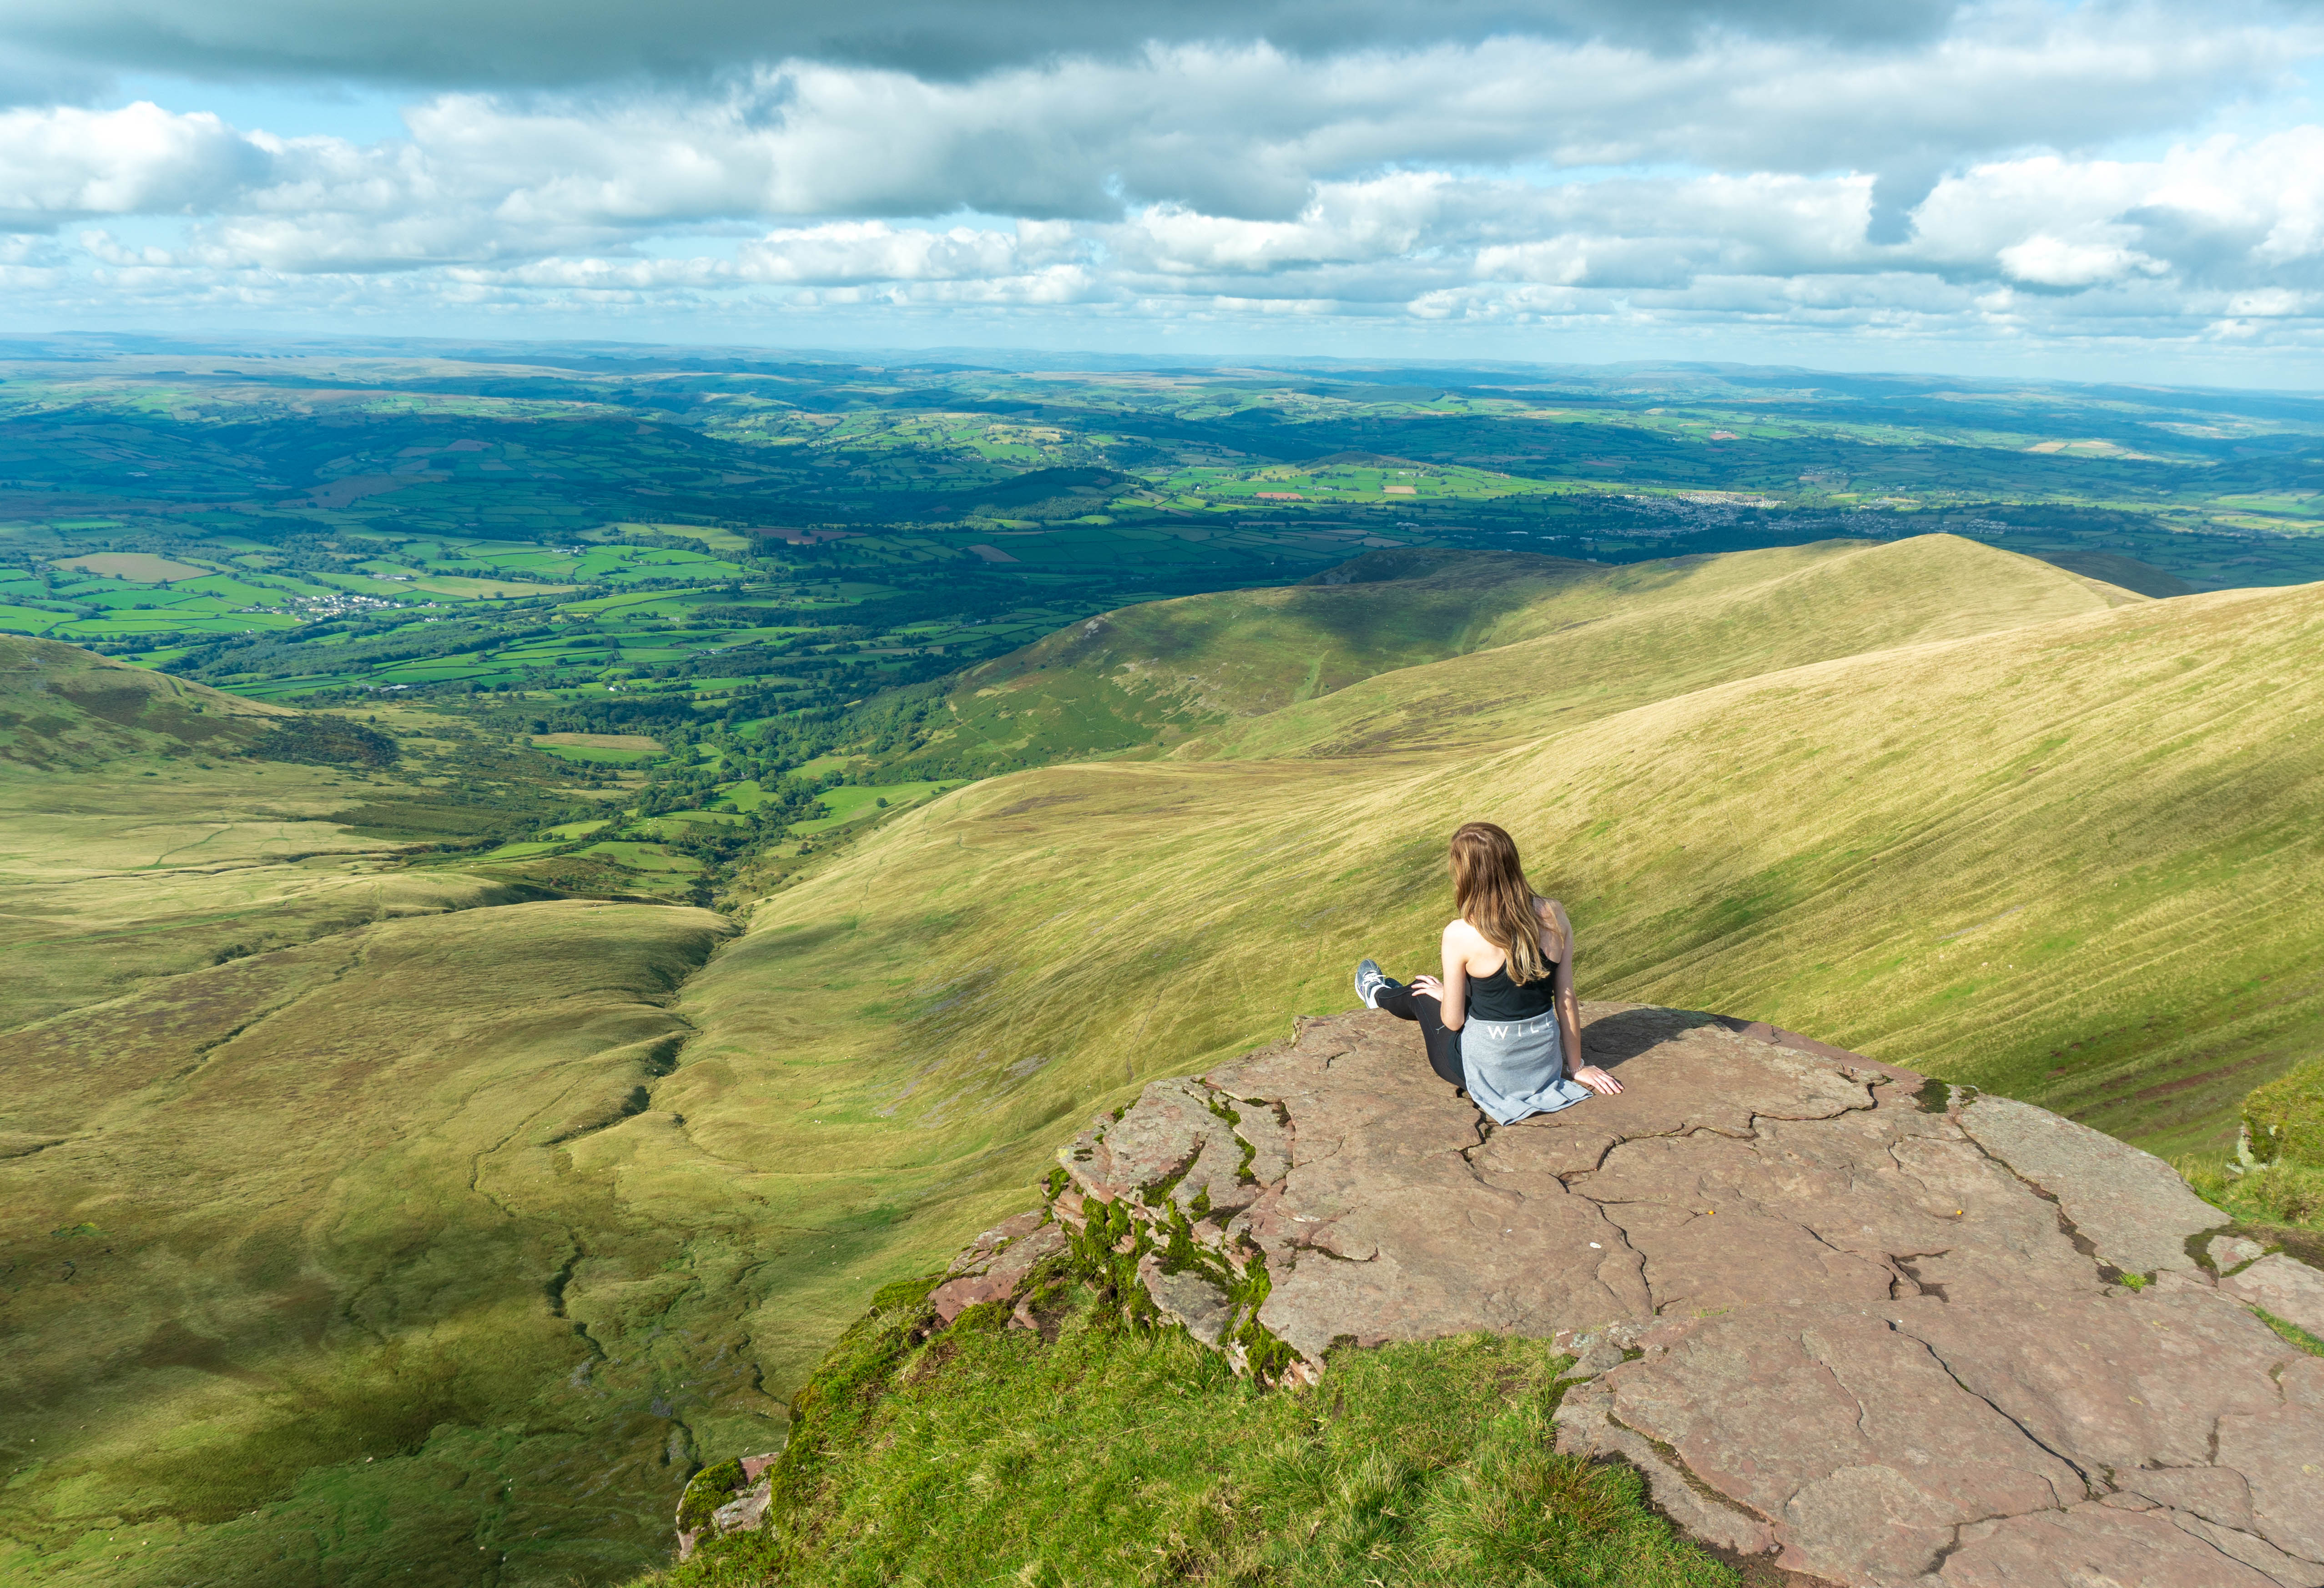 Peak of Pen Y Fan